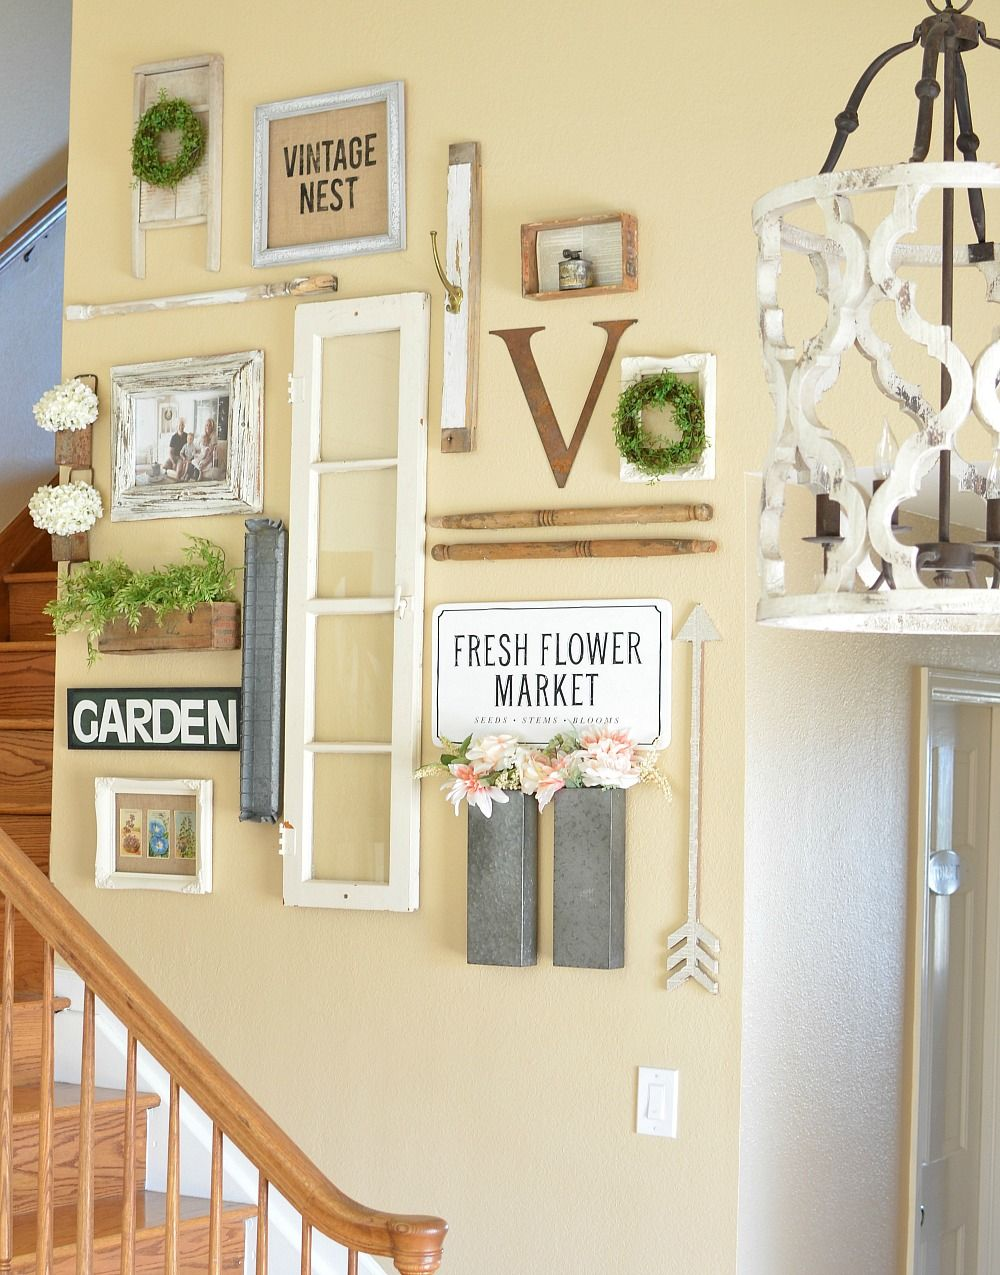 Farmhouse Style Gallery Wall for Spring | Pinterest | Farmhouse ...